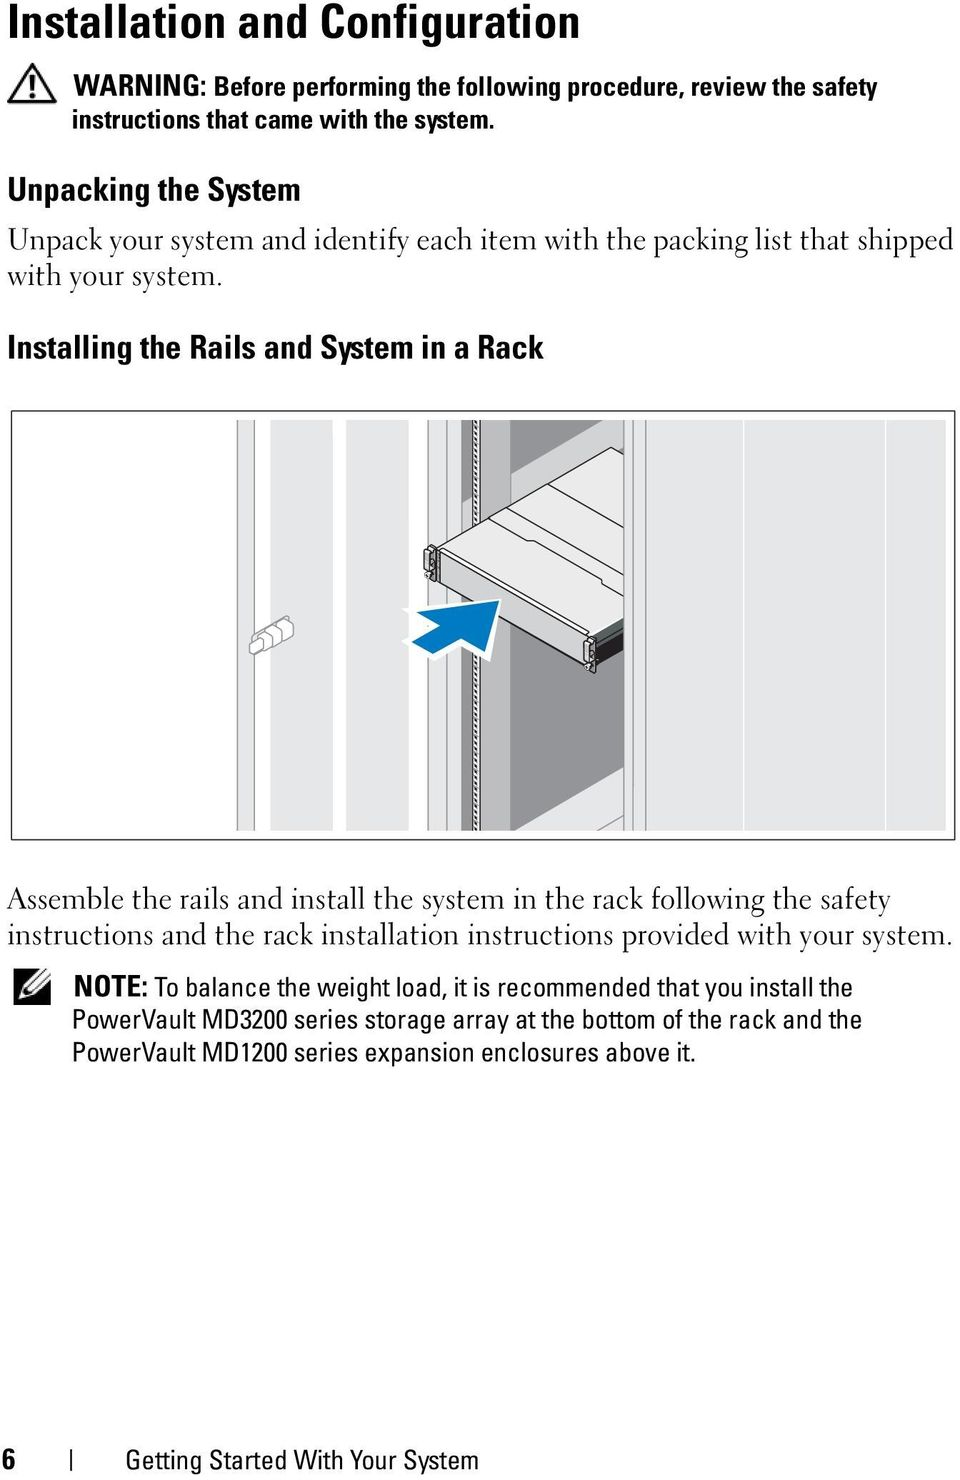 Installing the Rails and System in a Rack Assemble the rails and install the system in the rack following the safety instructions and the rack installation instructions